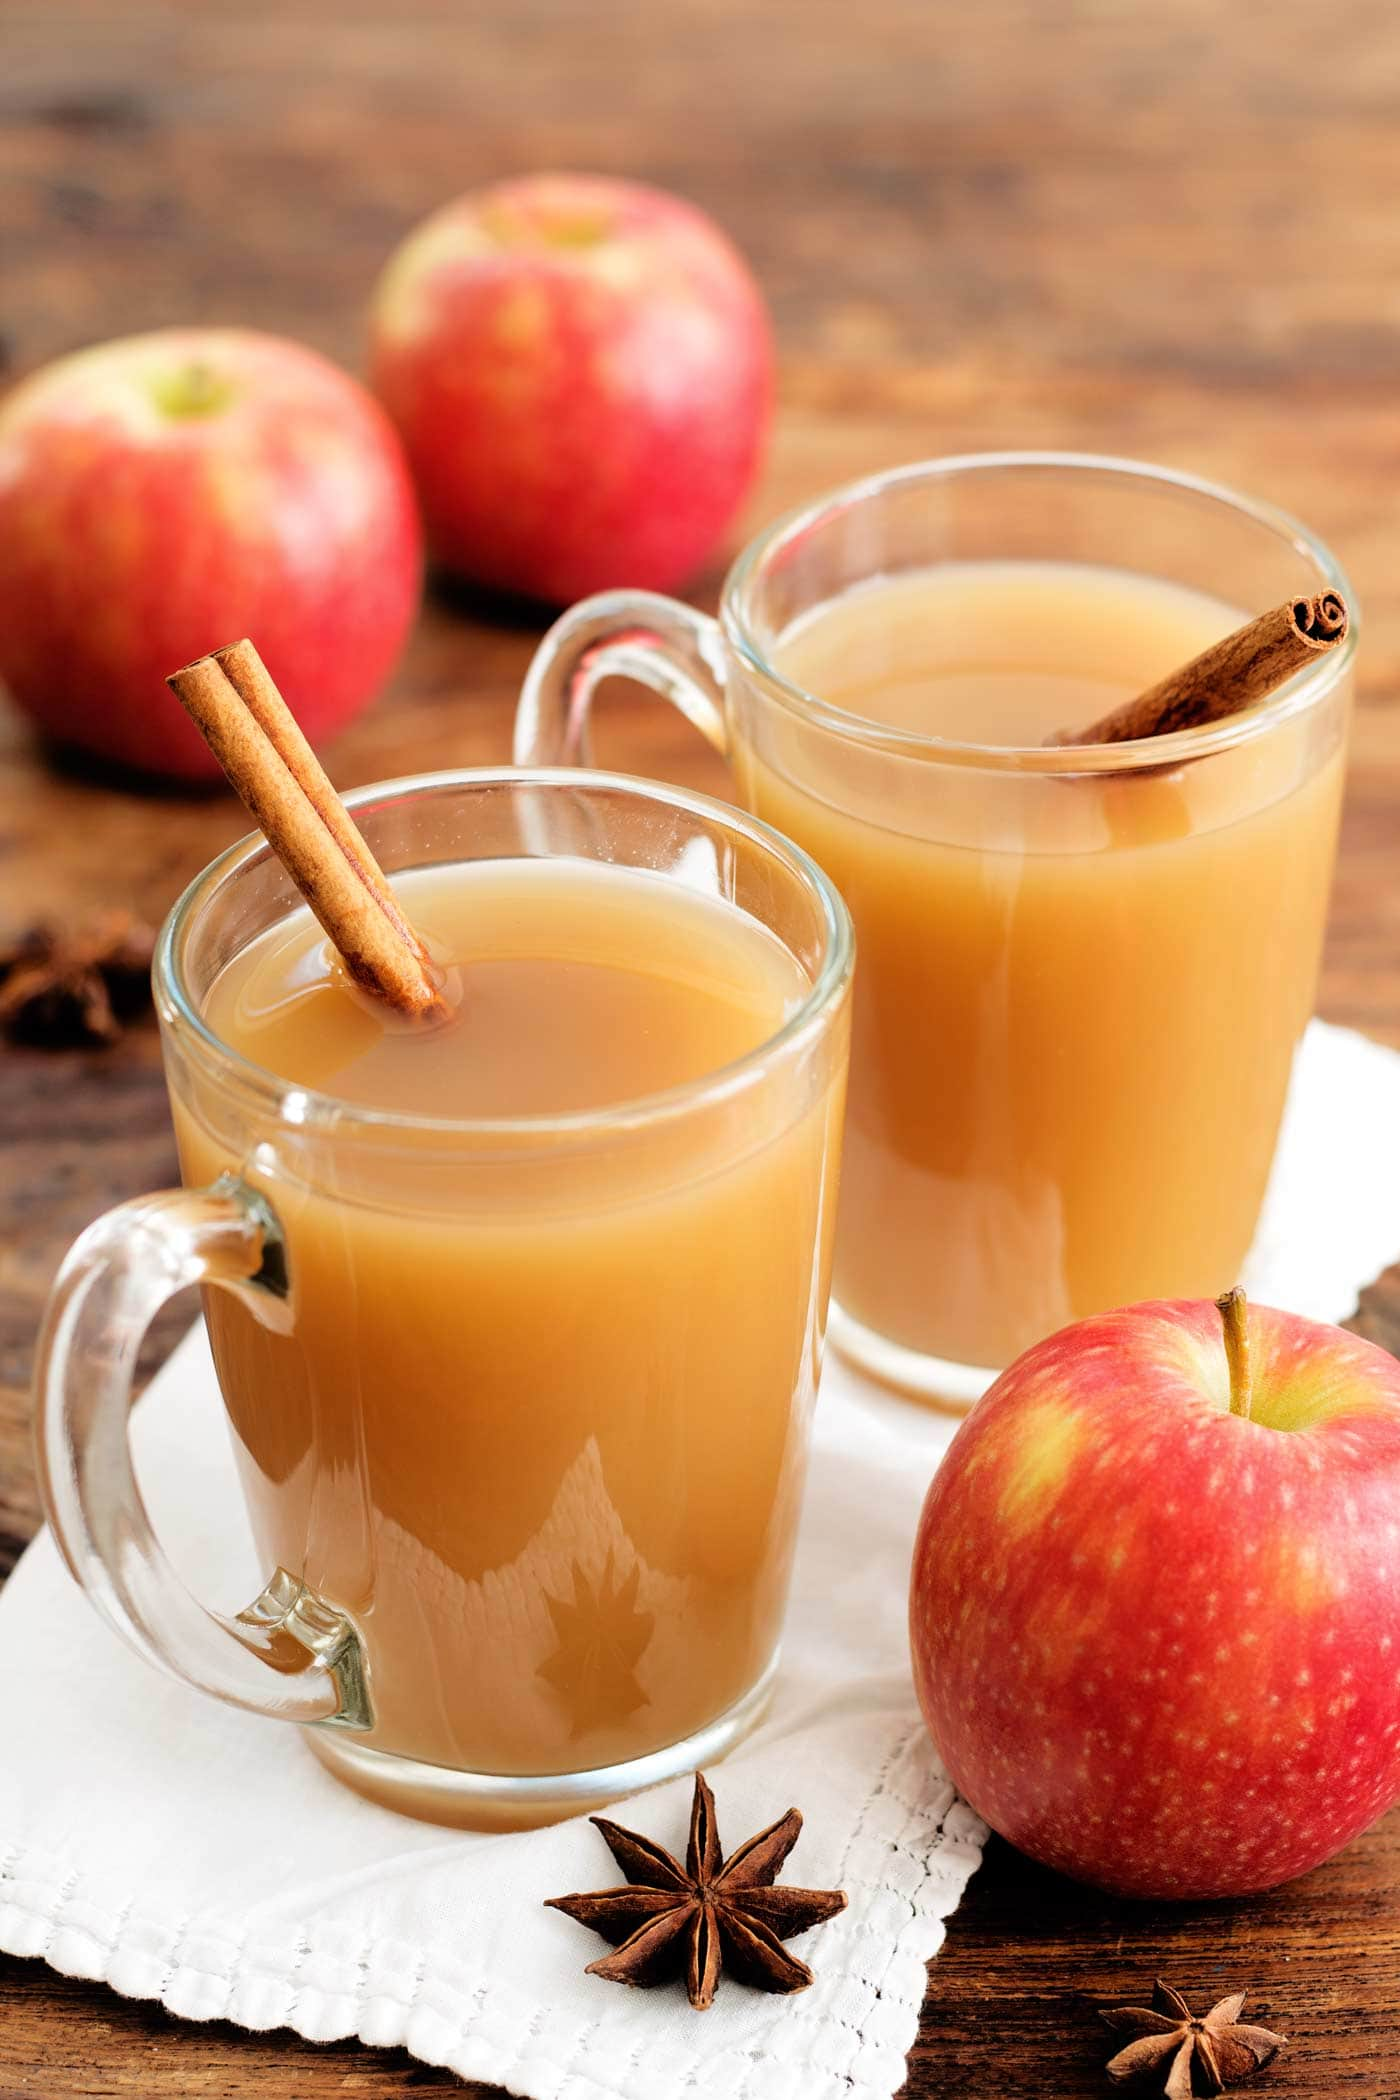 Easy to make and great for a party! This Crock-Pot apple cider is so simple to make in your slow cooker. It's paleo and can be made low carb and keto!